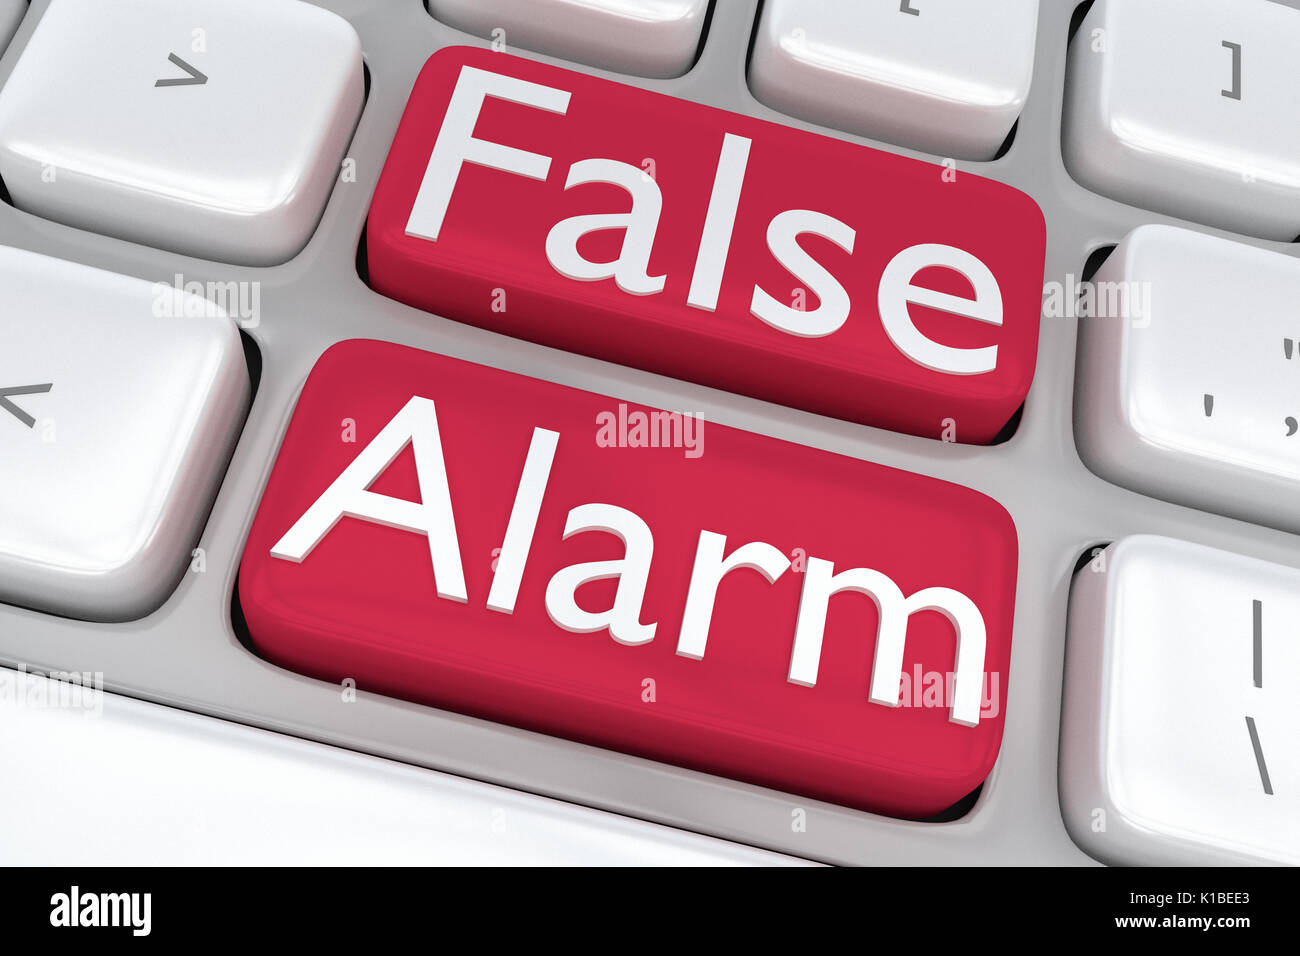 false alarm Directed by del lord with moe howard, larry fine, curly howard, beatrice blinn  three inept firemen try to avoid being fired by their increasingly exasperated.